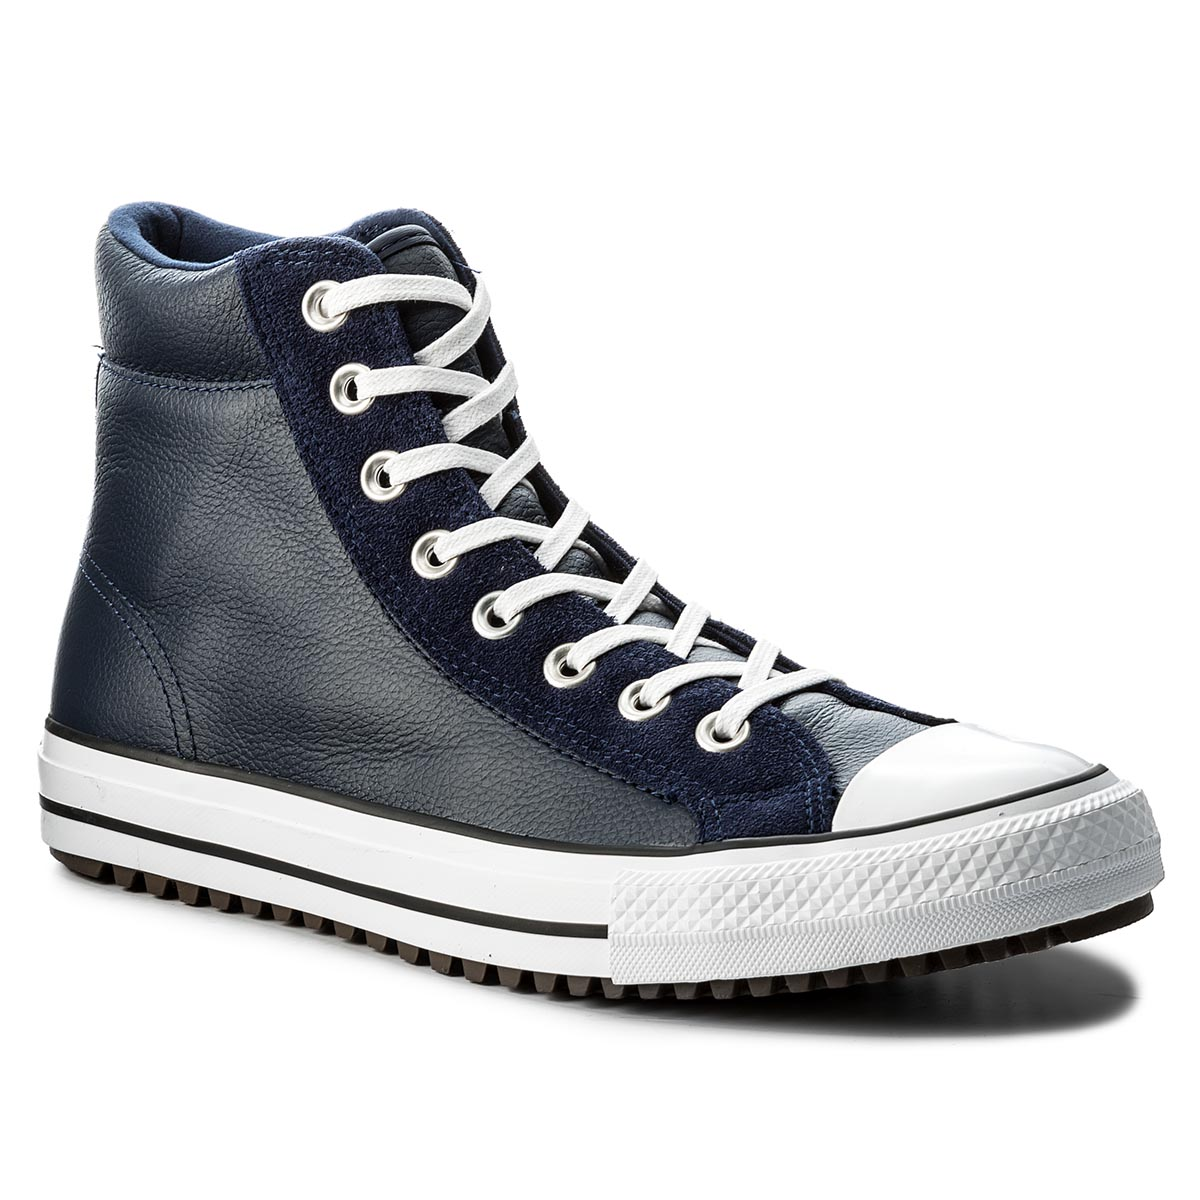 Teniși CONVERSE - Ctas Boot Pc Hi 157495C Midnight Navy/White